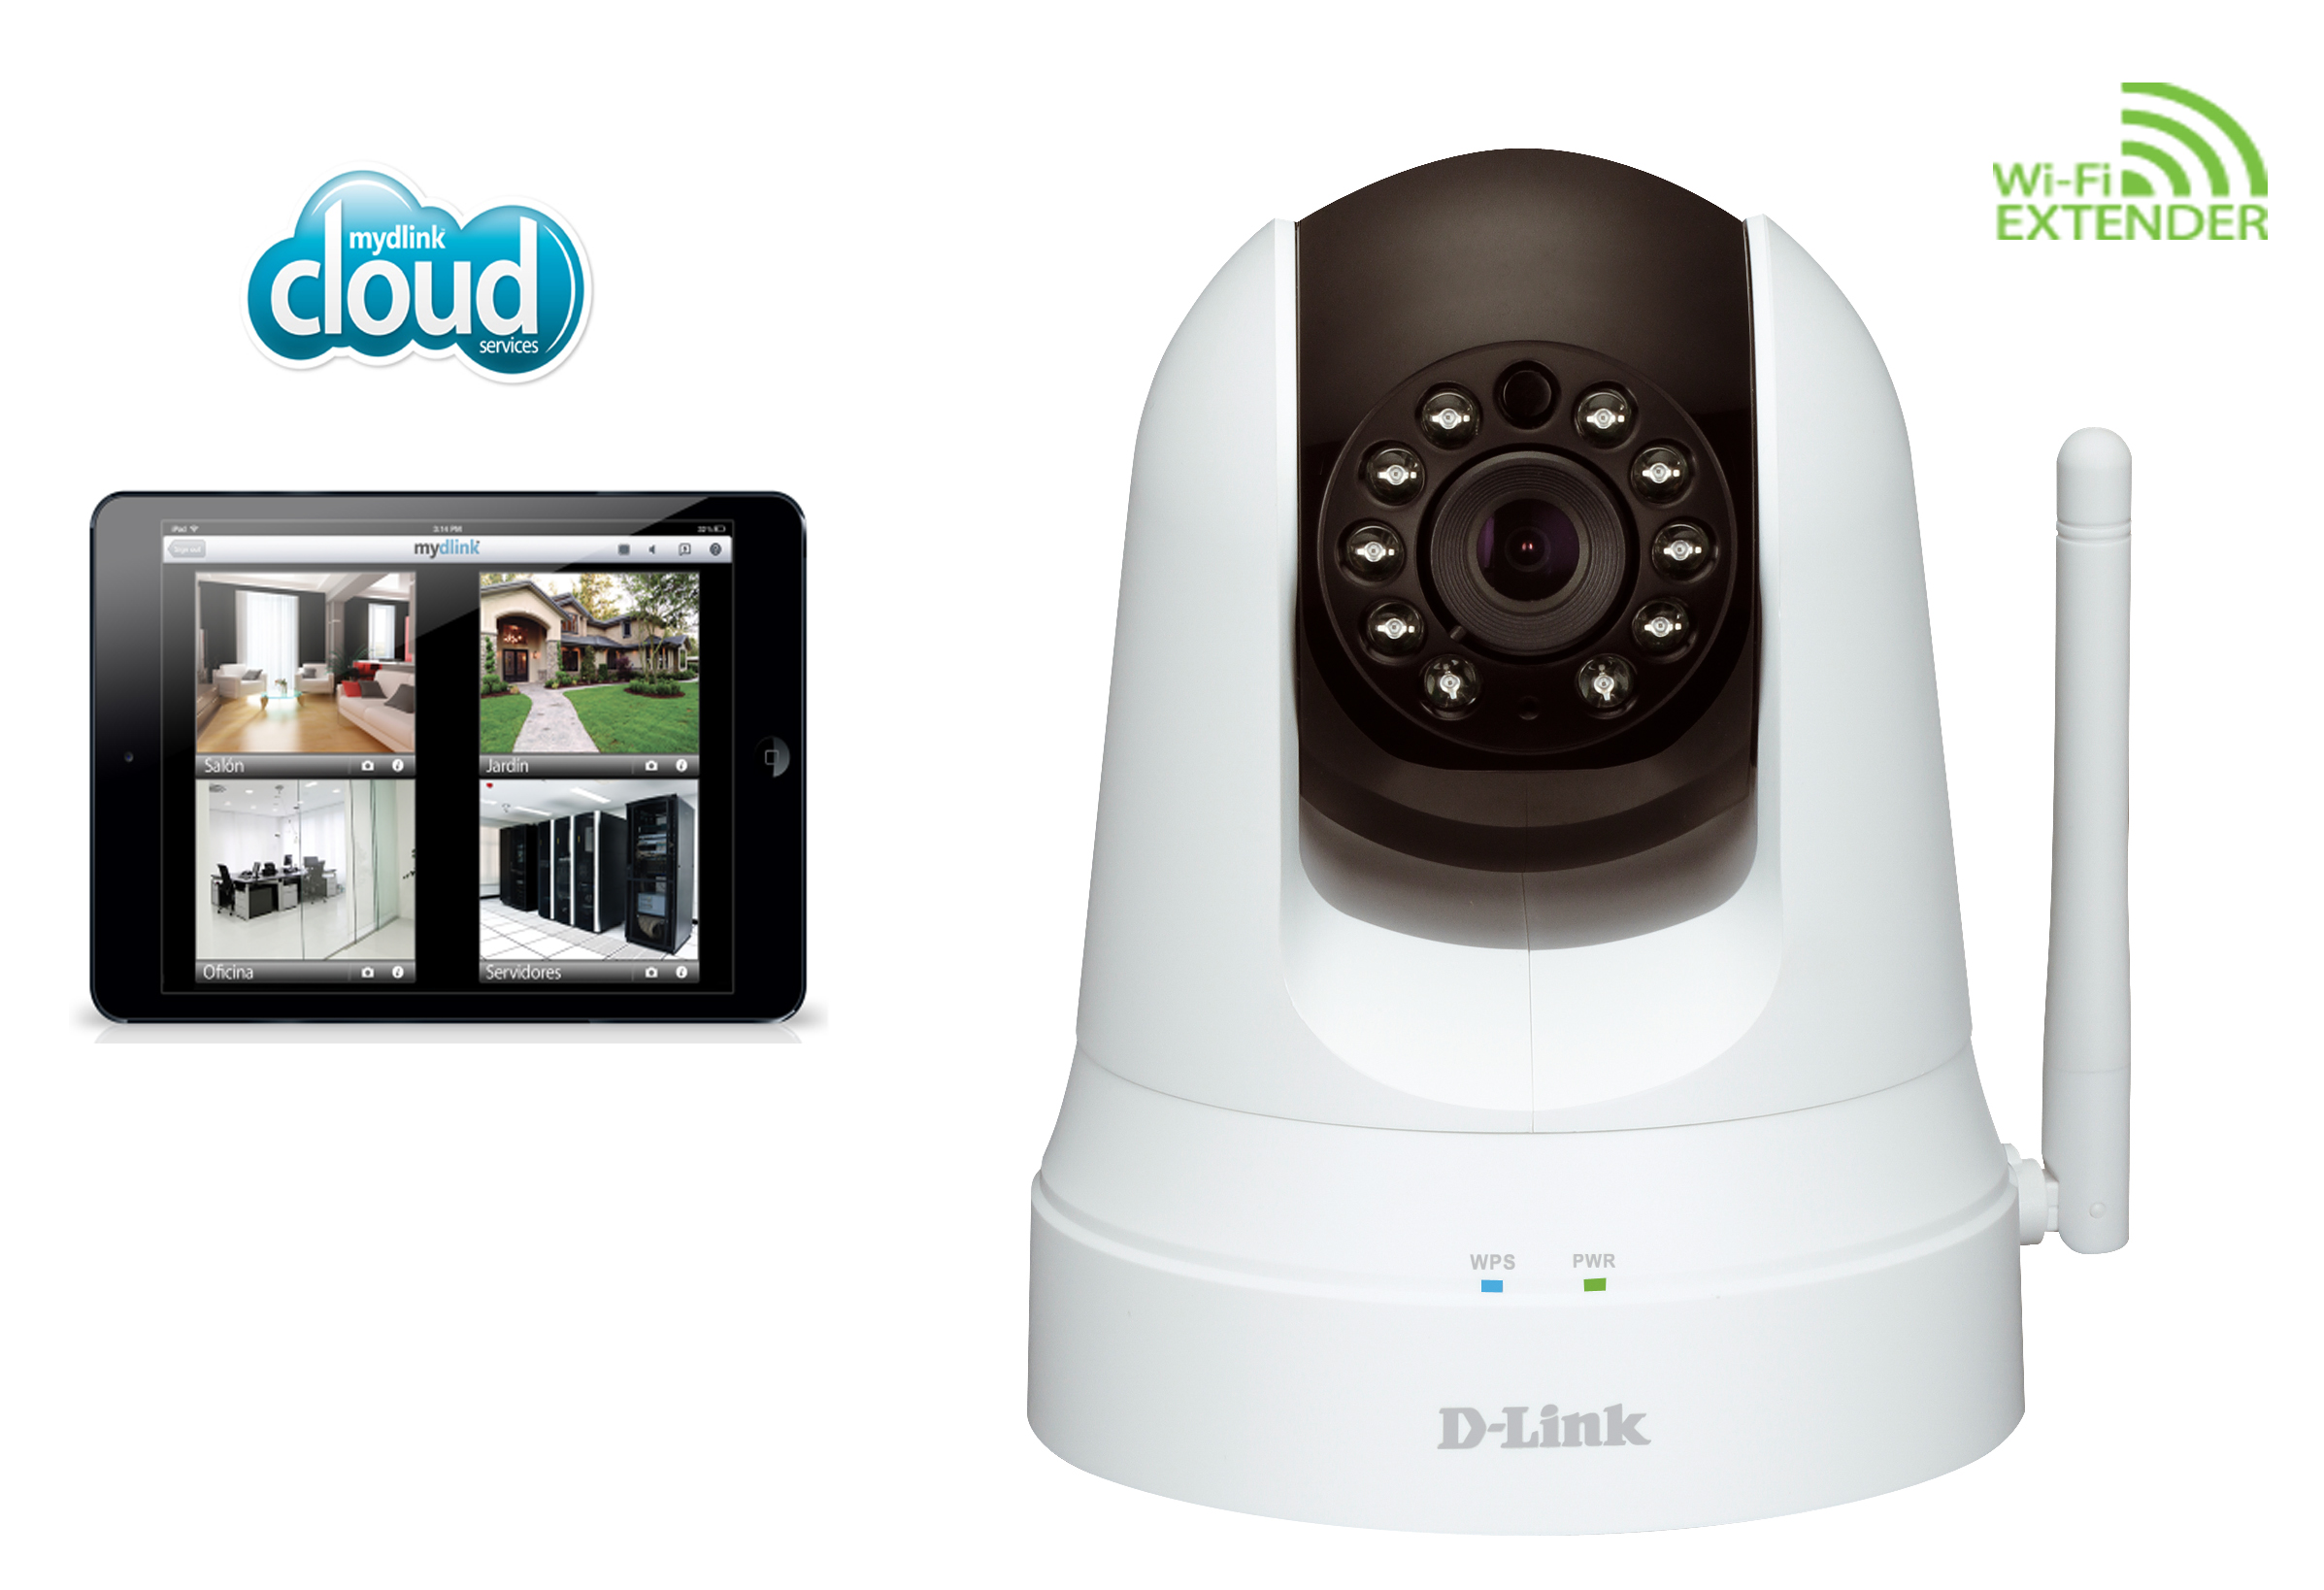 D-Link_DCS-5020L_PTZ_Camera_IP_Cloud_WiFiRepeater